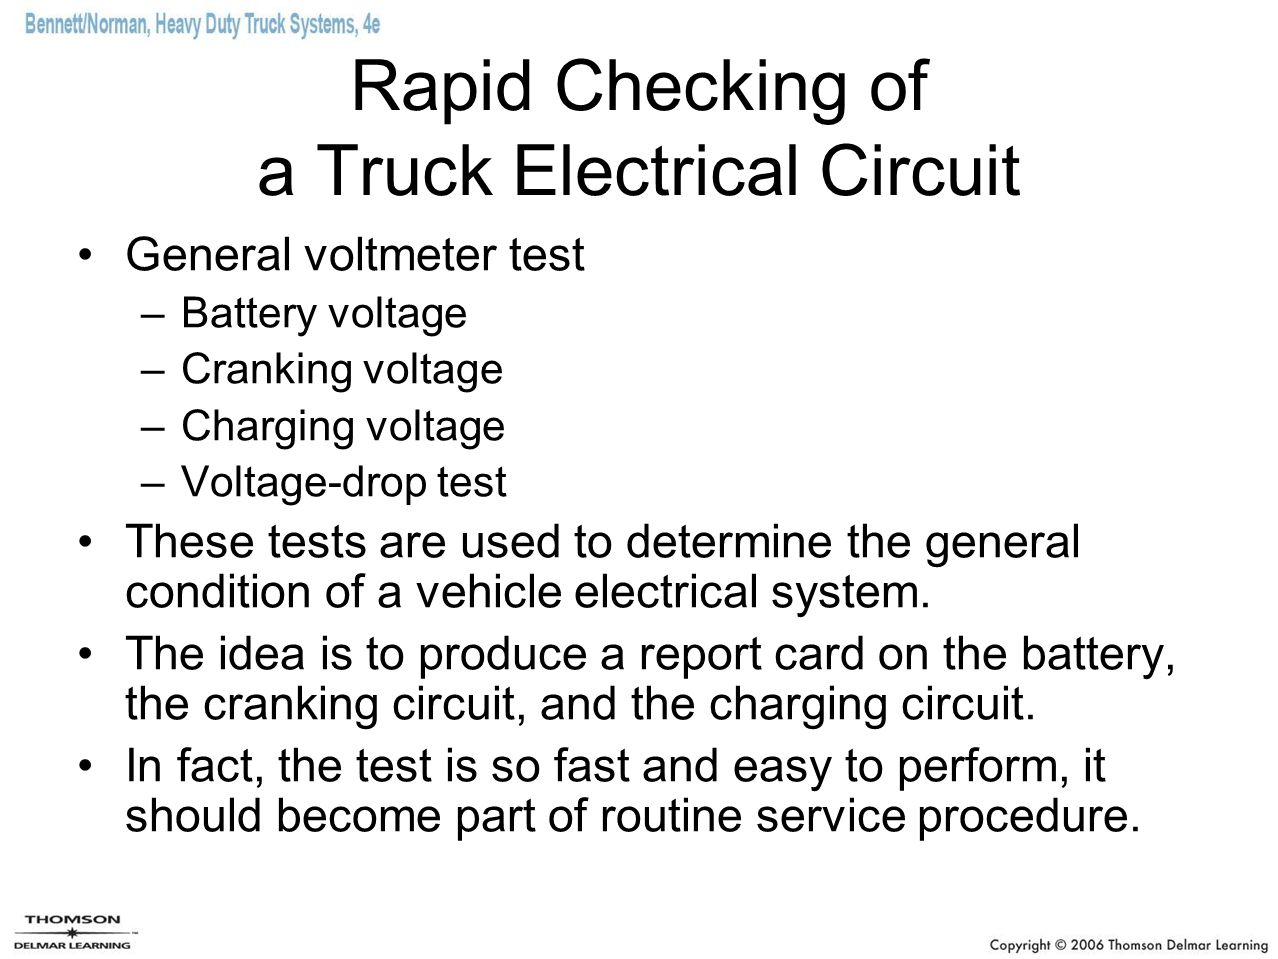 Rapid Checking of a Truck Electrical Circuit